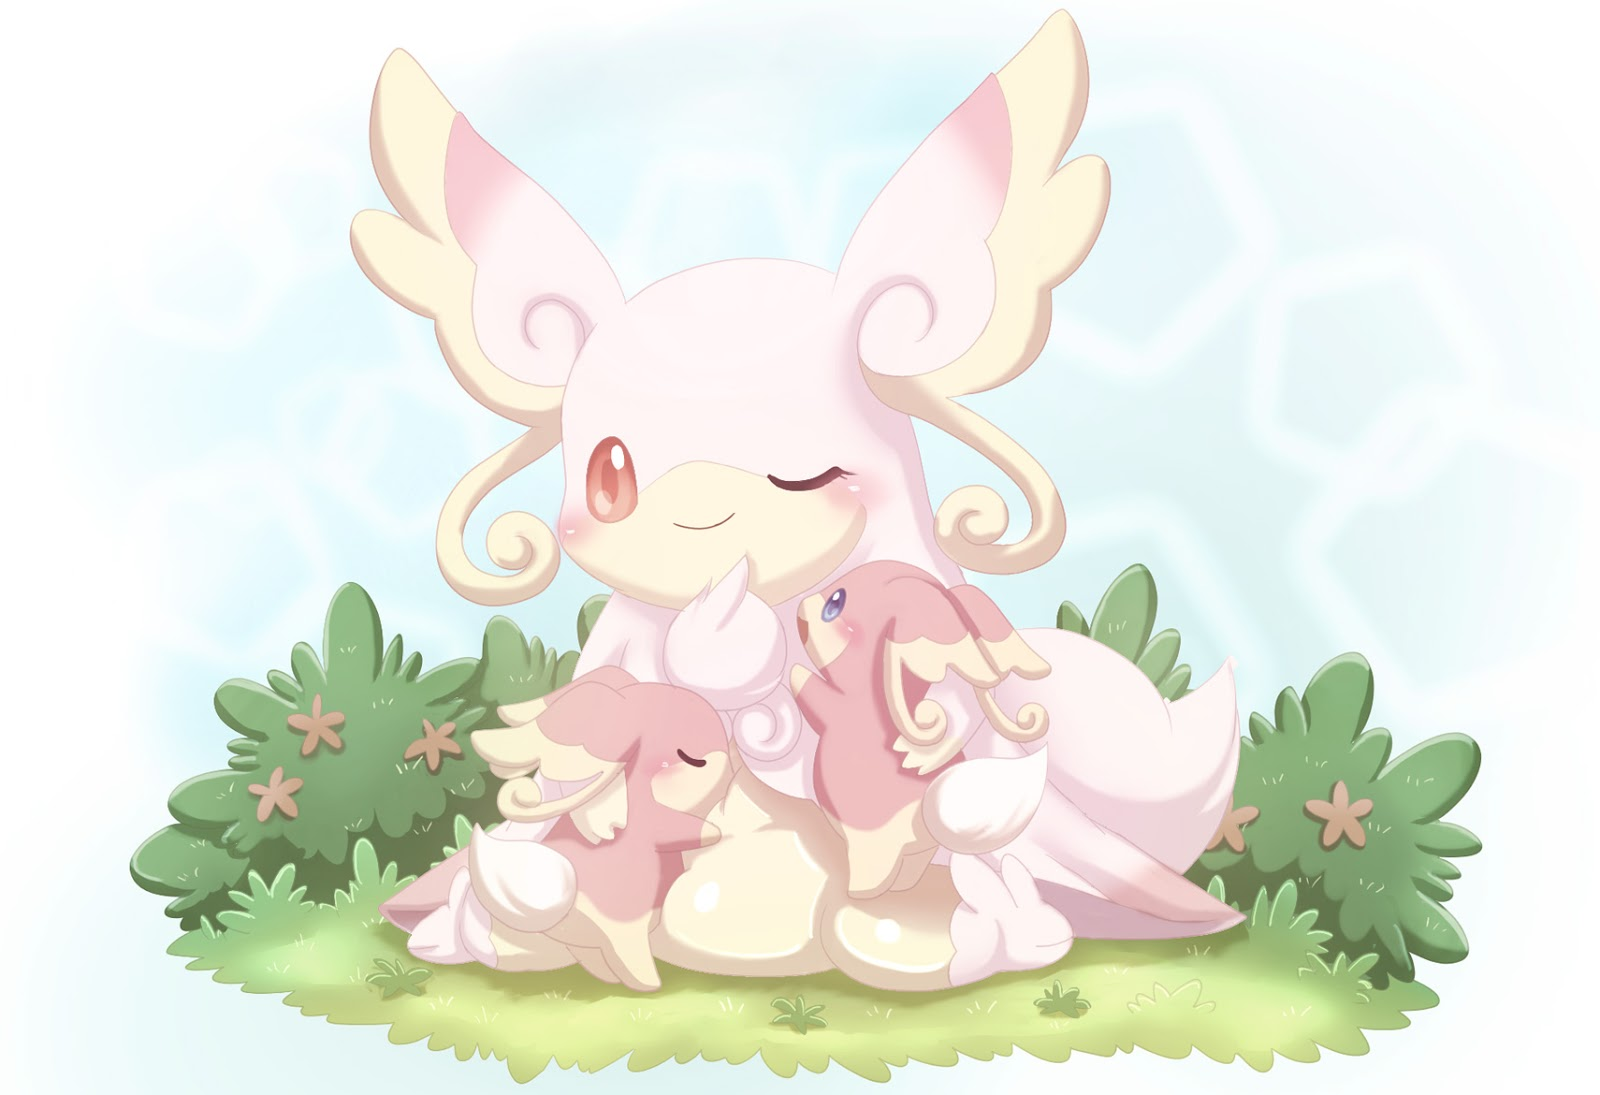 Pokemon audino experience